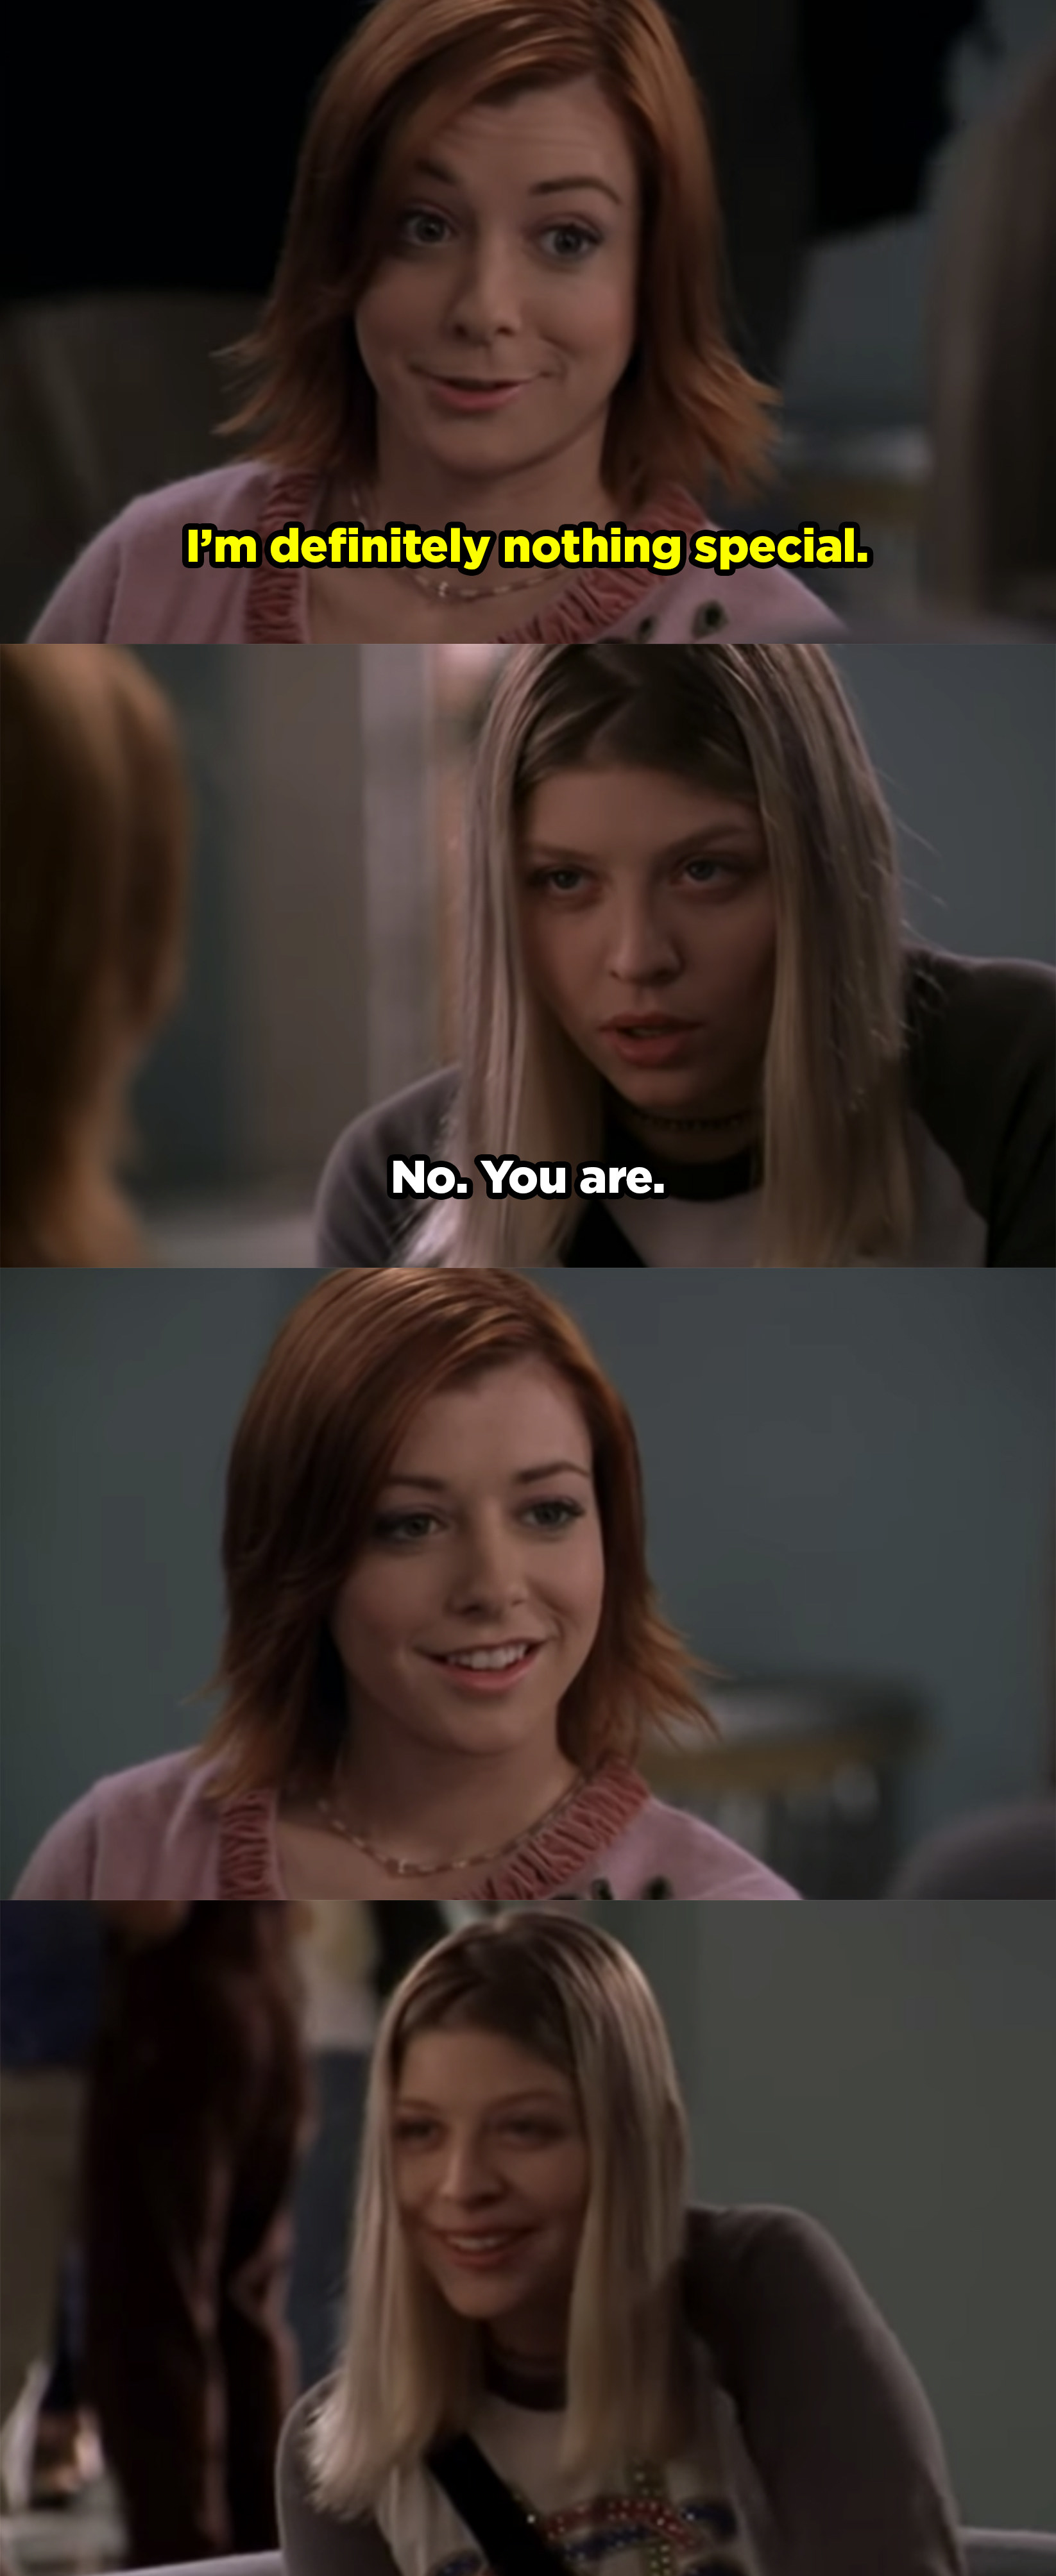 """Willow telling Tara that she doesn't feel like she's anything special and Tara replies """"No, you are."""""""